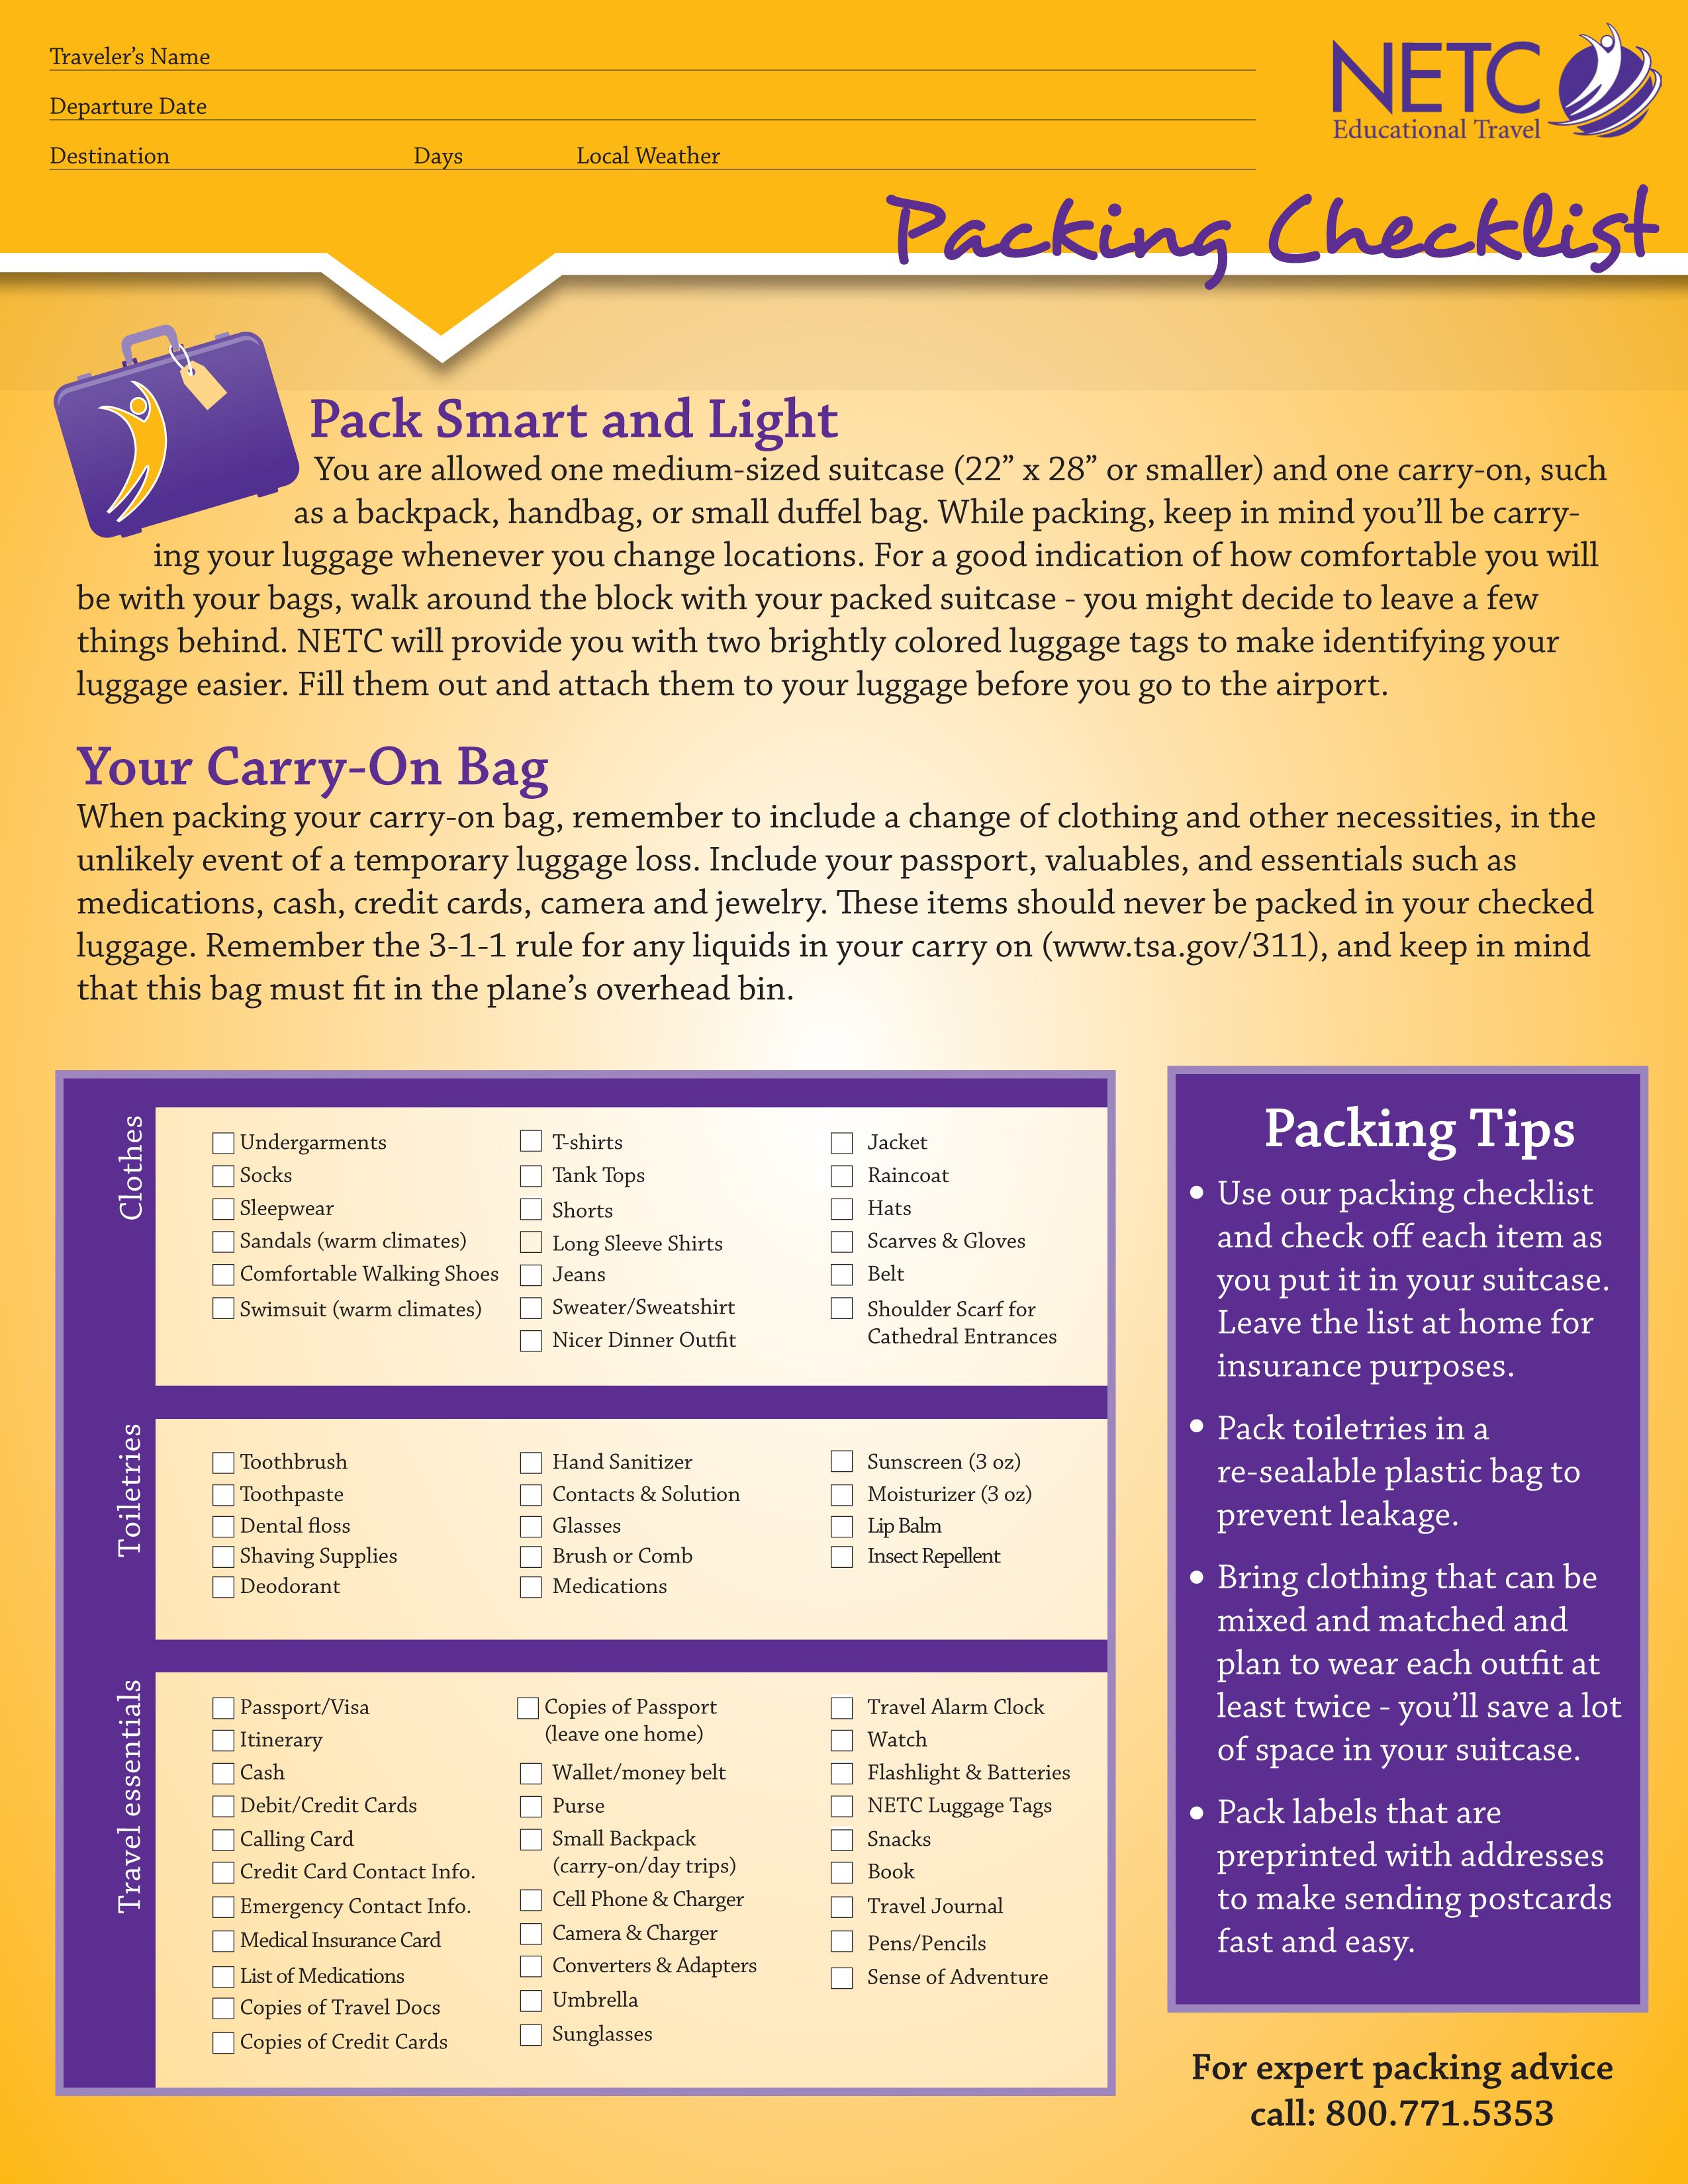 DonT Forget The Essentials With This Packing Checklist Printable